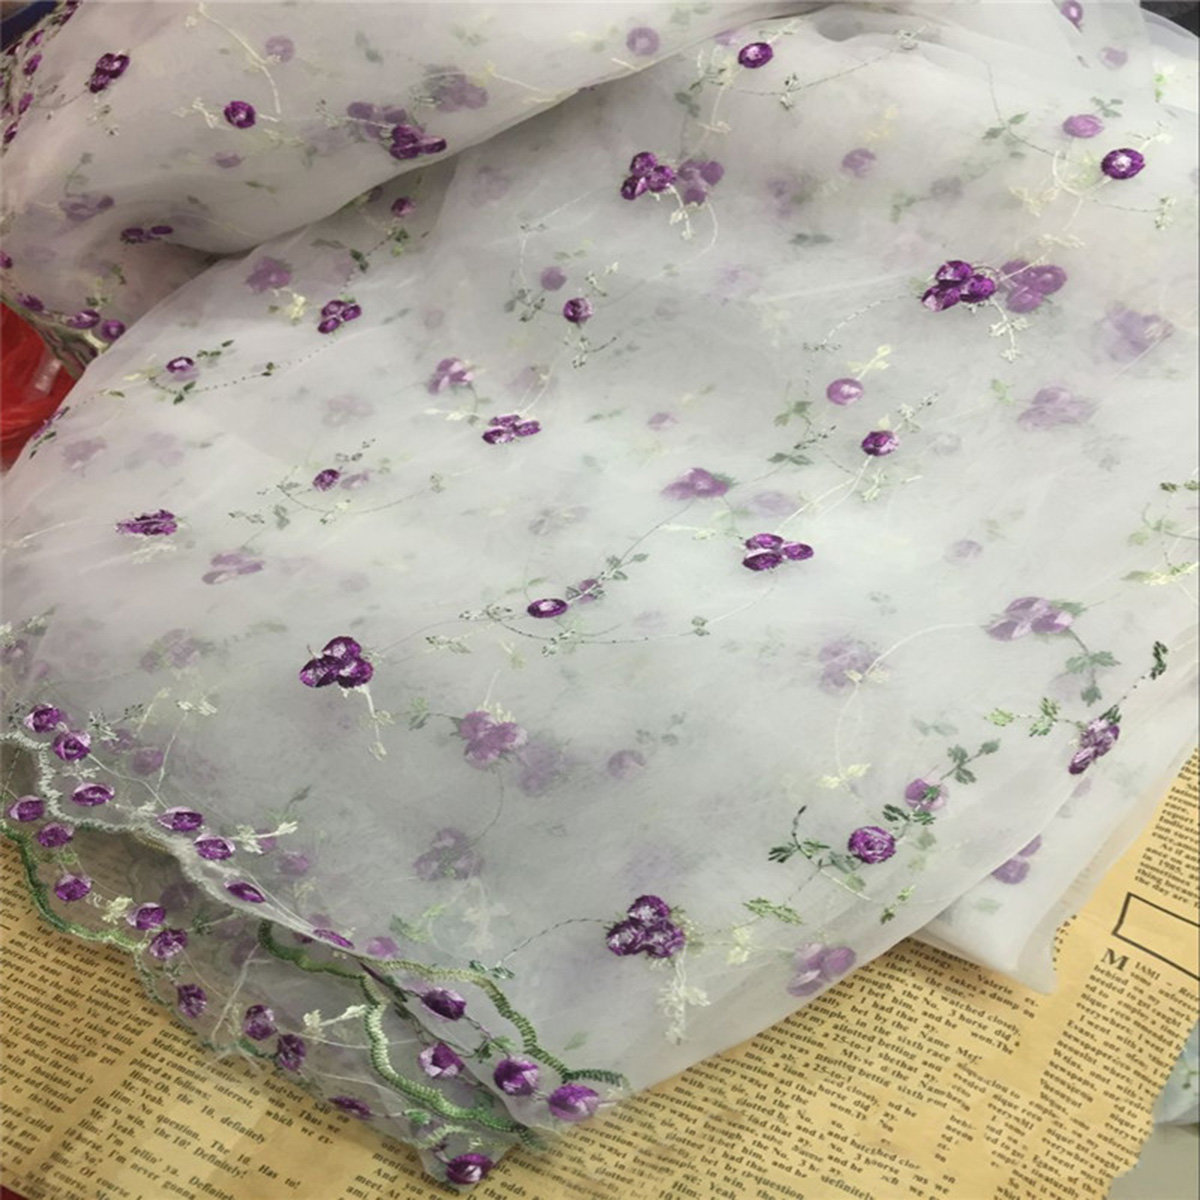 100x130cm Wide Lace Embroidery Flowers Organza Fabric Scalloped Edge